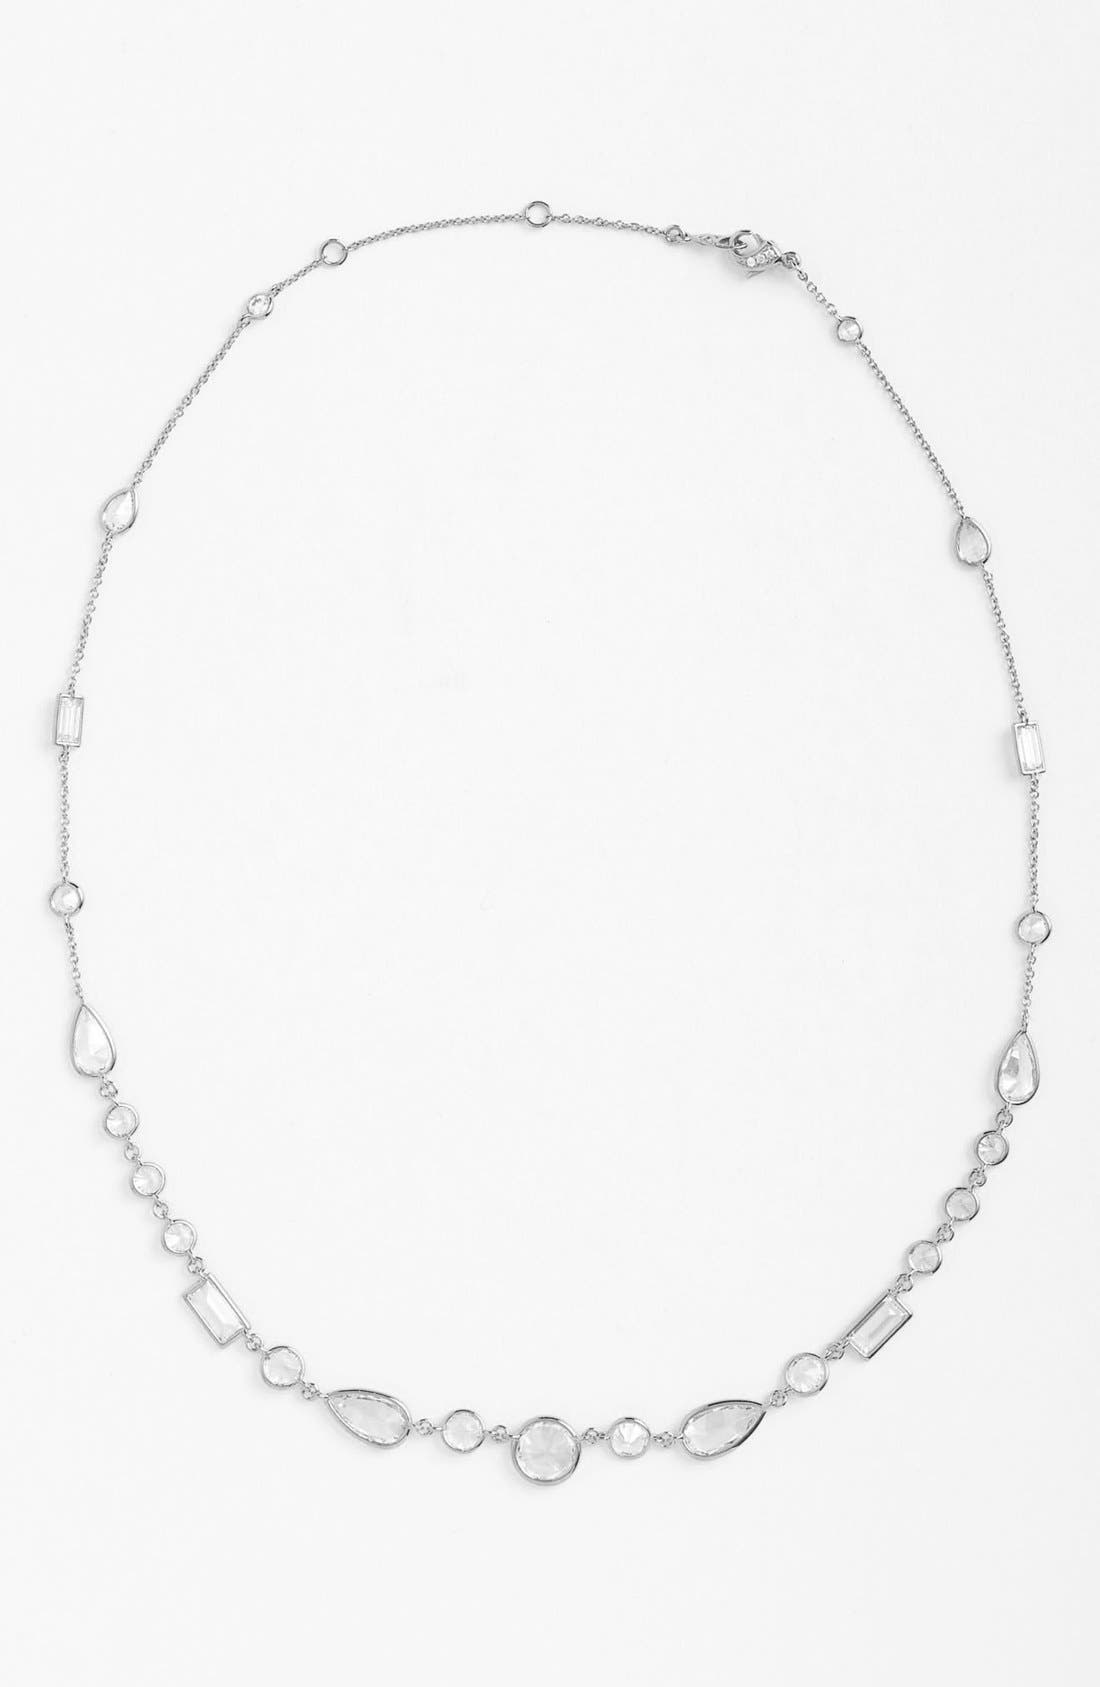 Main Image - Nadri Mixed Cut Cubic Zirconia Necklace (Nordstrom Exclusive)